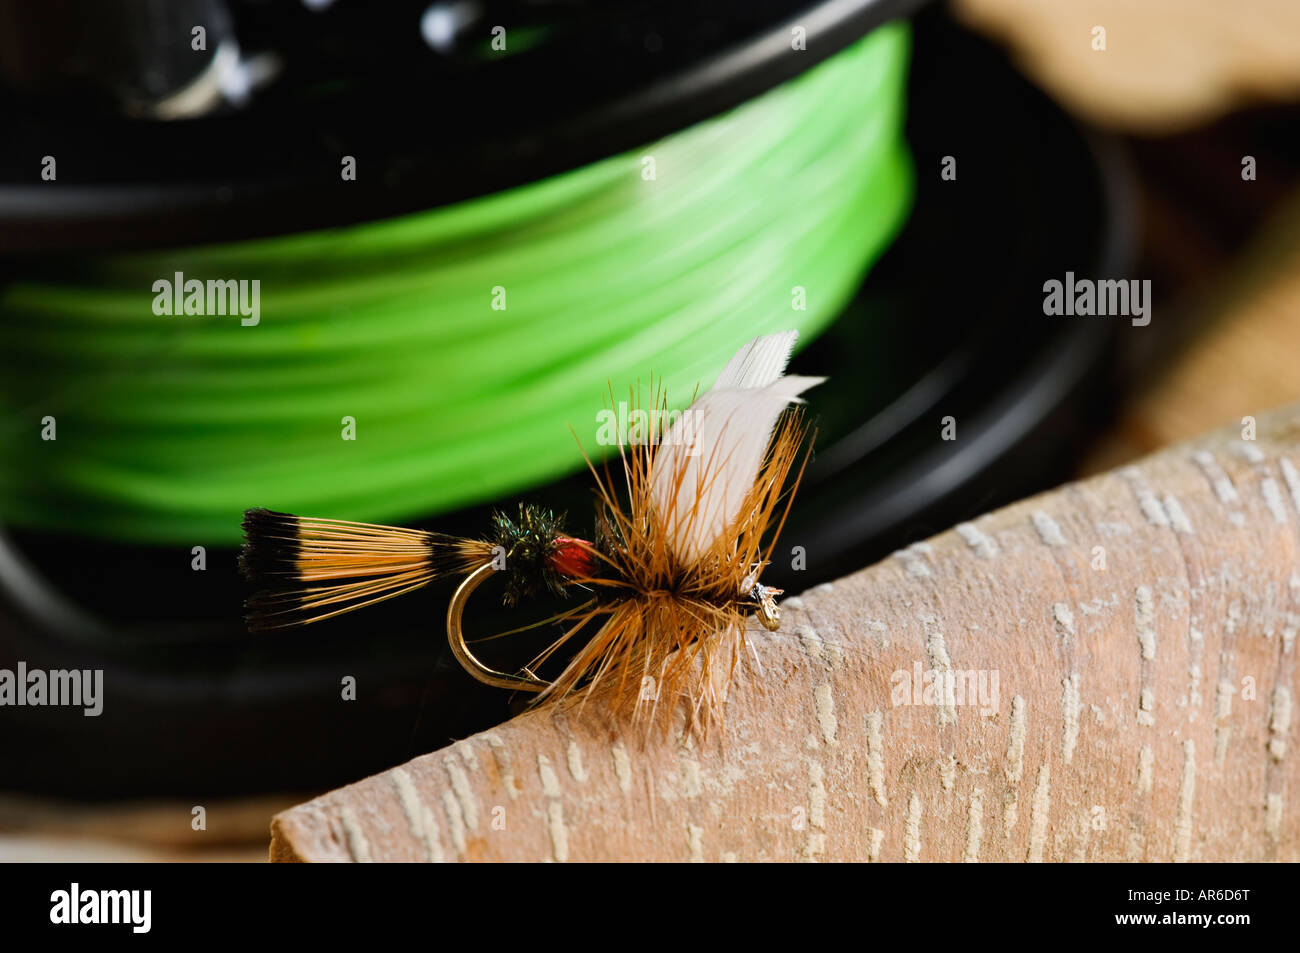 Royal Coachman Dry Fly with Reel and Fly Line Behind - Stock Image